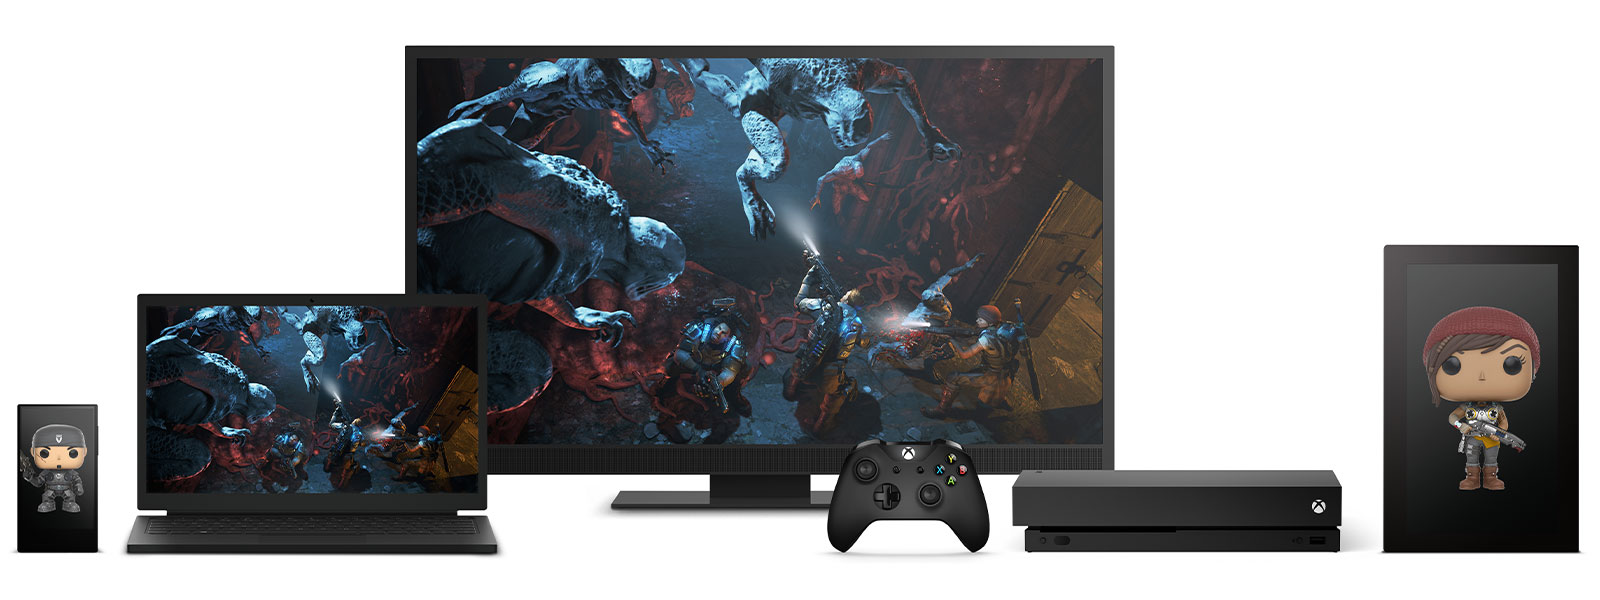 Front view of Xbox One X alongside various other devices displaying game characters and screenshots